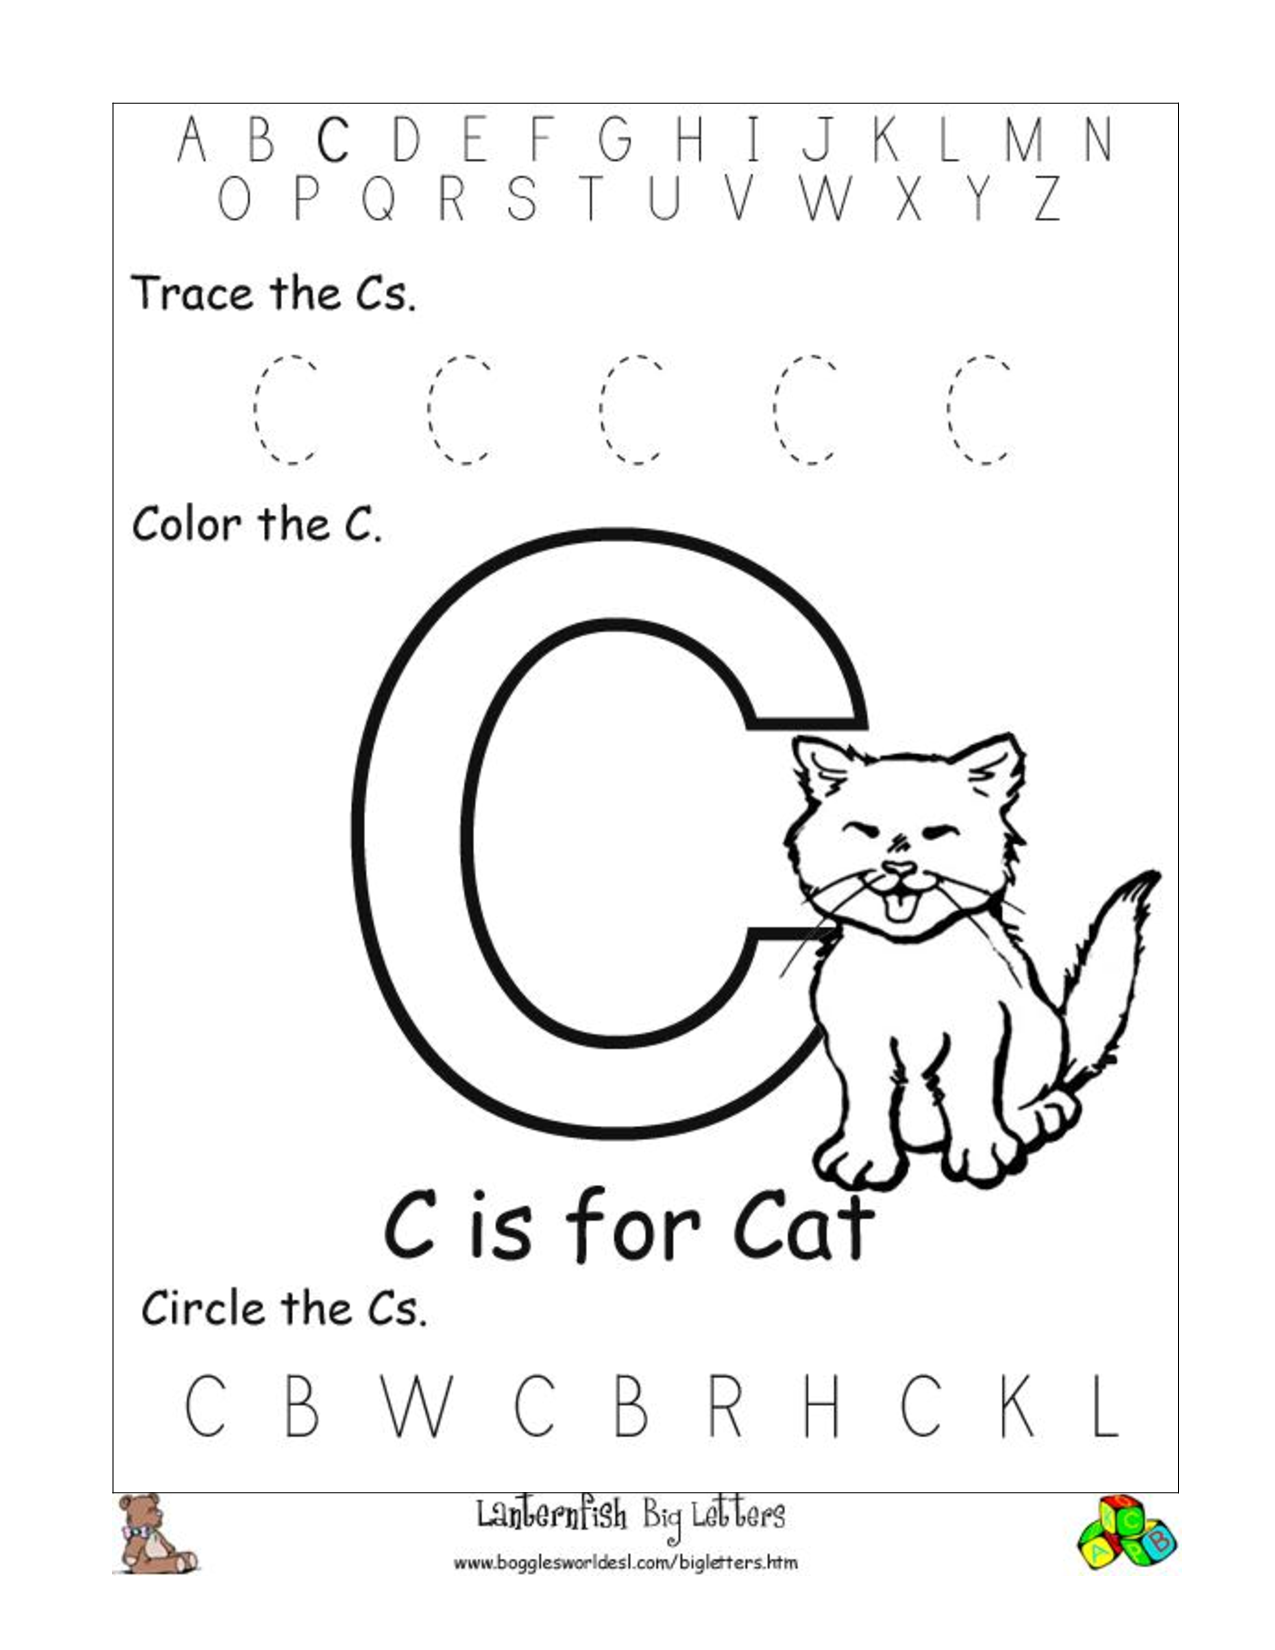 Worksheets Letter C Worksheets For Kindergarten c preschool worksheets letter worksheets